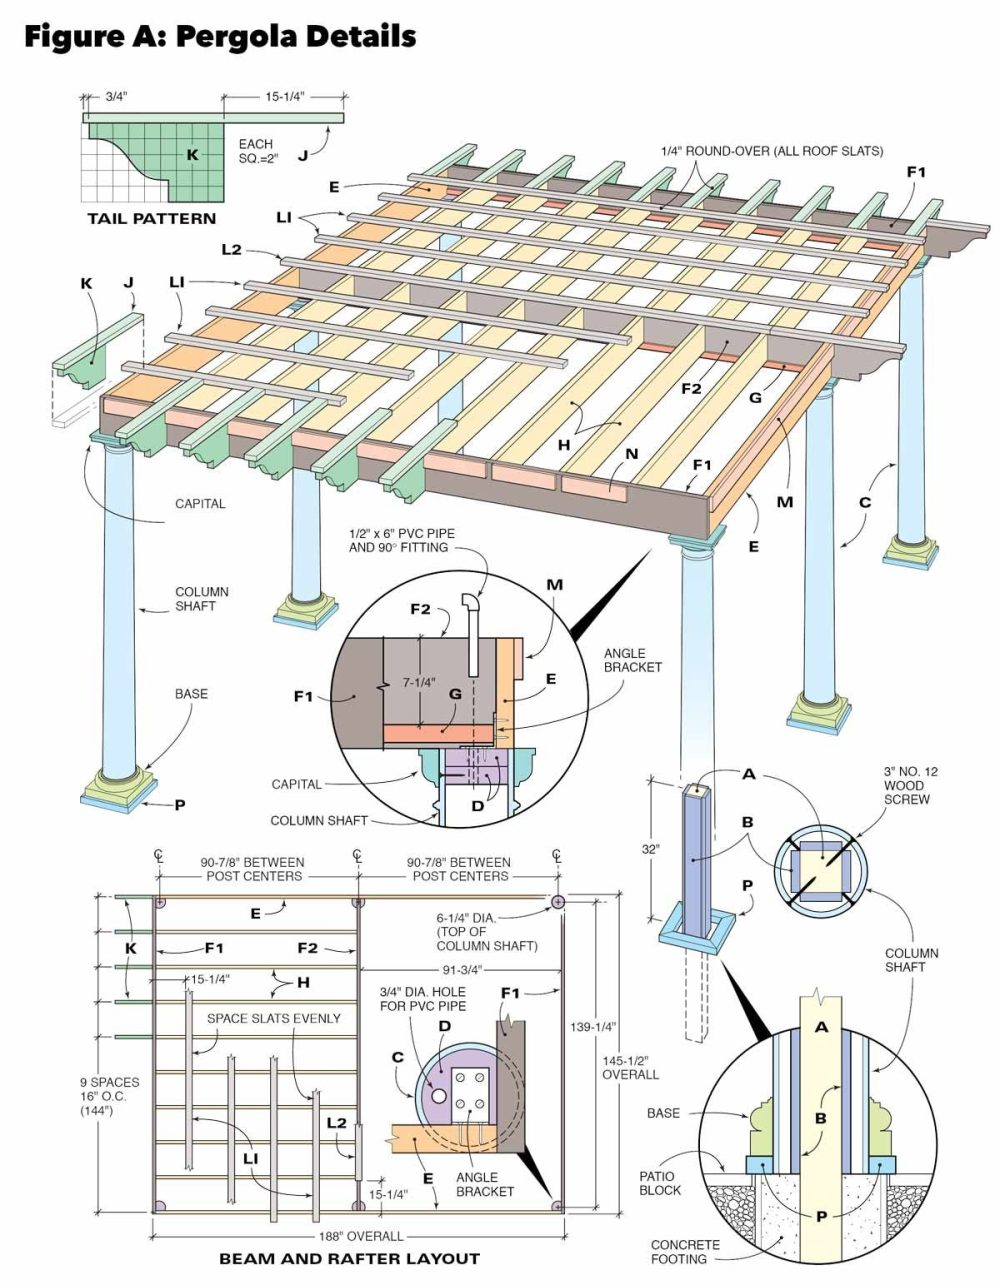 medium resolution of figure a pergola design details